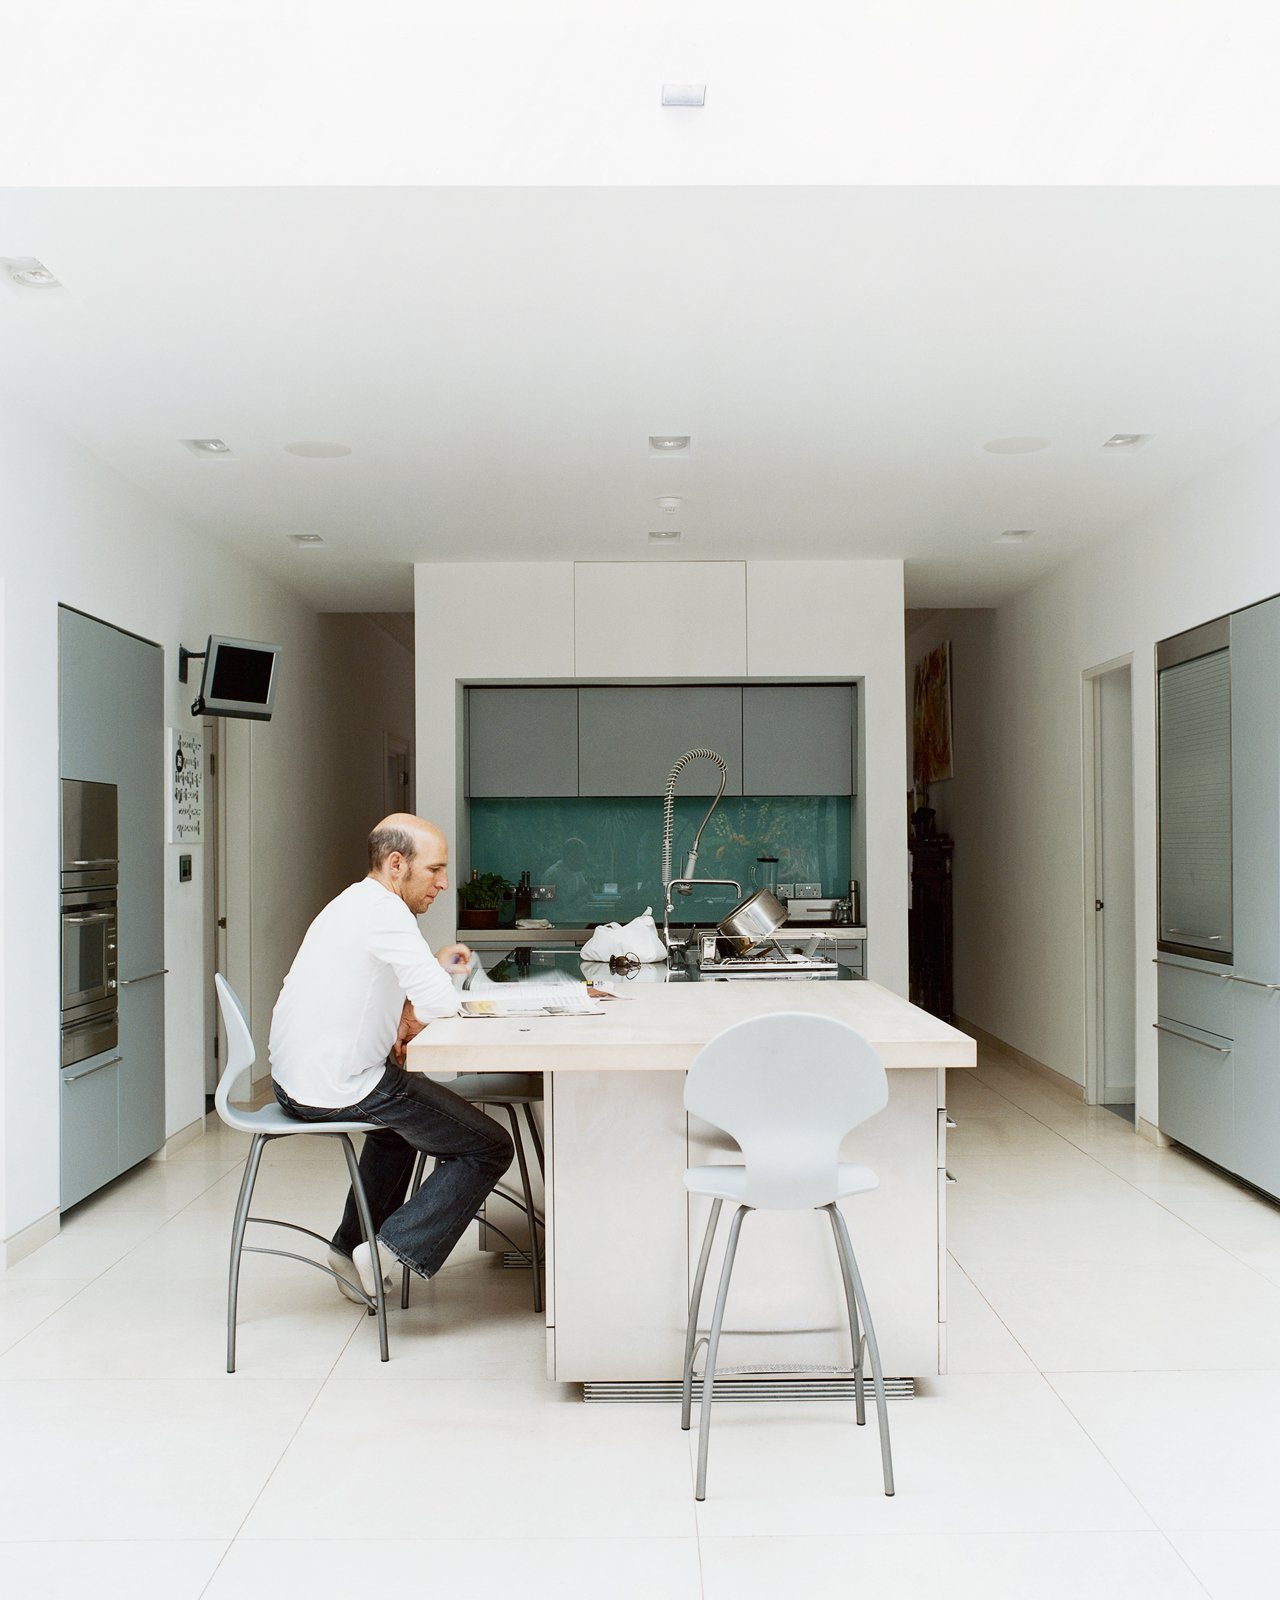 """To avoid formality, Phillips created a different environment for each room. The kitchen, for example, is understated by virtue of its simple cabinetry by Boffi, and its white walls that flow with the rest of the house. """"What we love about living here,"""" says Judith, """"is that it works well with our young family. There is plenty of daylight, all the latest technology, and we don't have to worry about sticky fingers destroying anything.""""  Photo 6 of 10 in Victorian Secrets"""